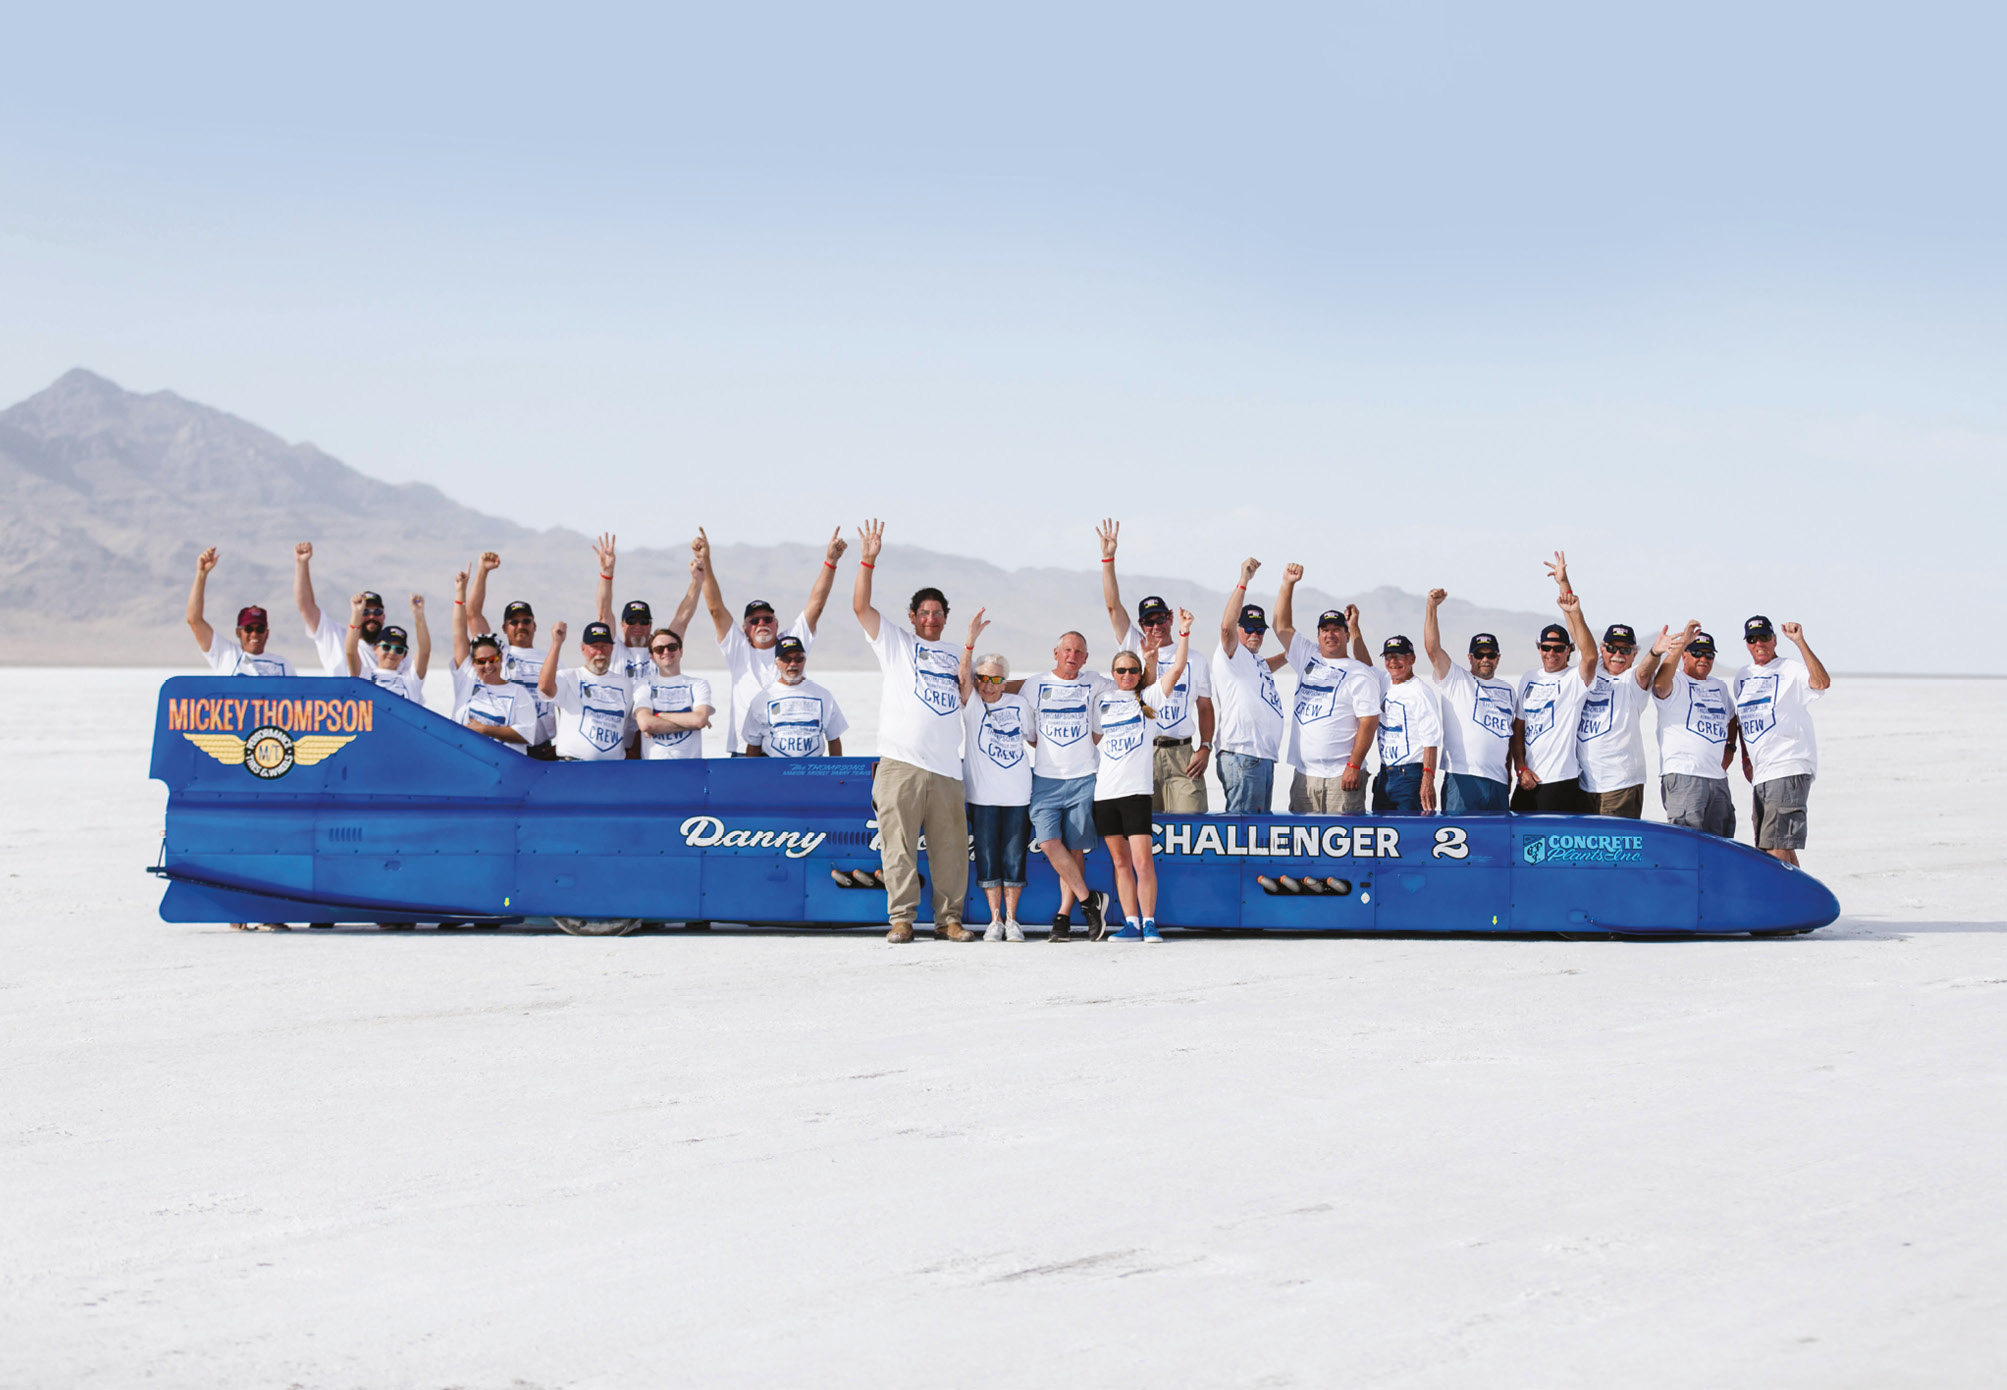 The volunteer-led team behind Challenger II celebrate, with Mickey Thompson's name still emblazoned on the car